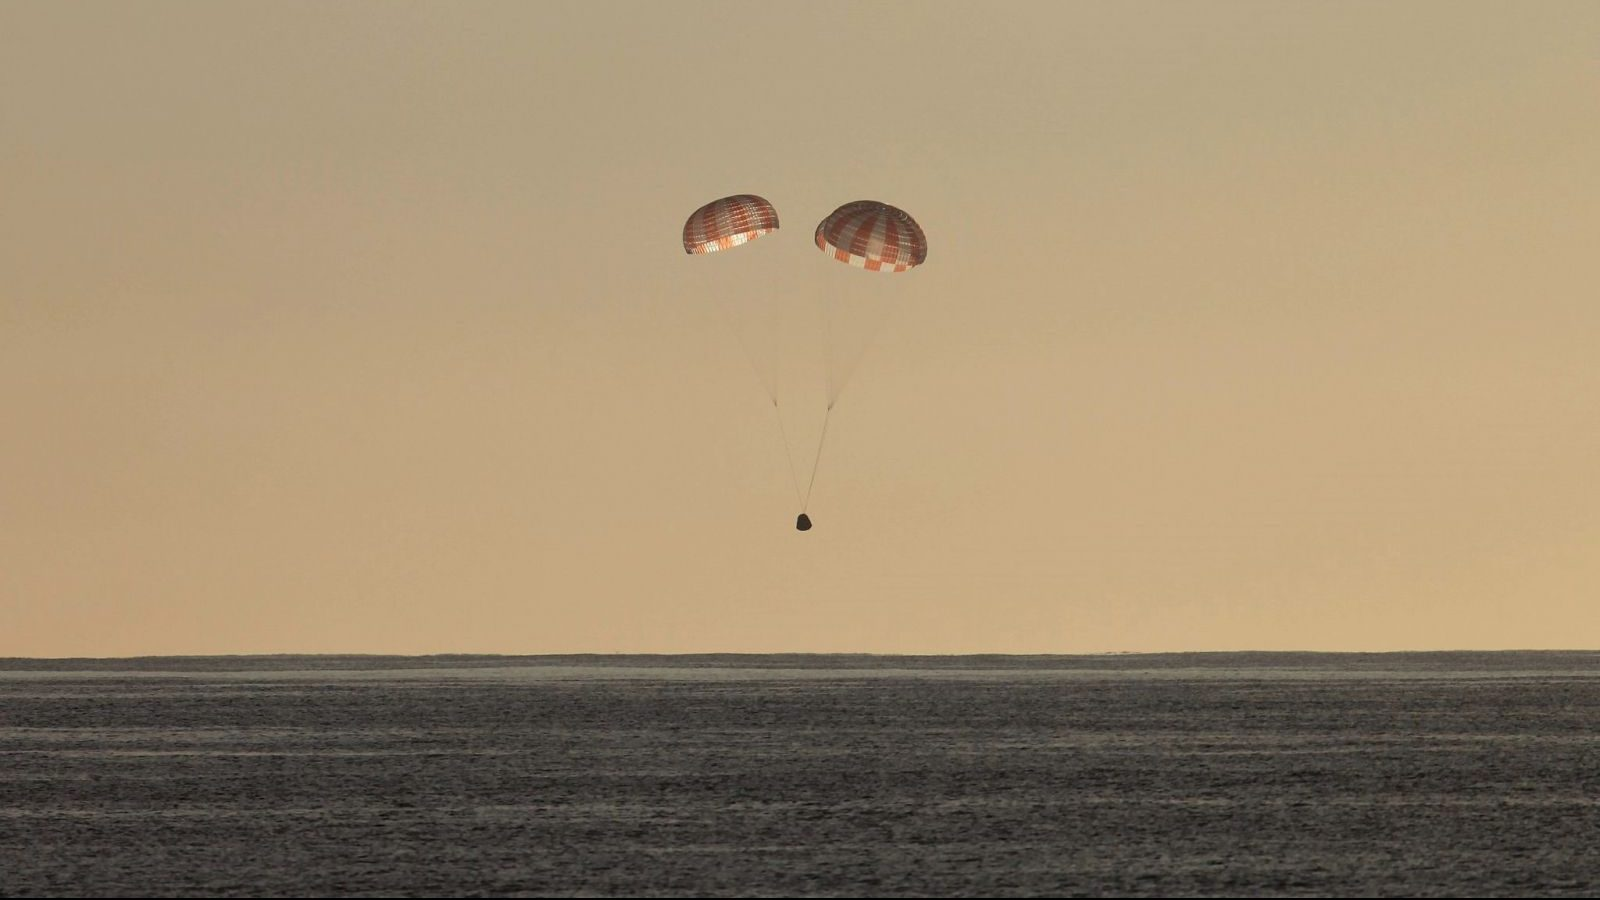 CRS-10 Dragon splashdown – 14:46 GMT, 2017-03-19